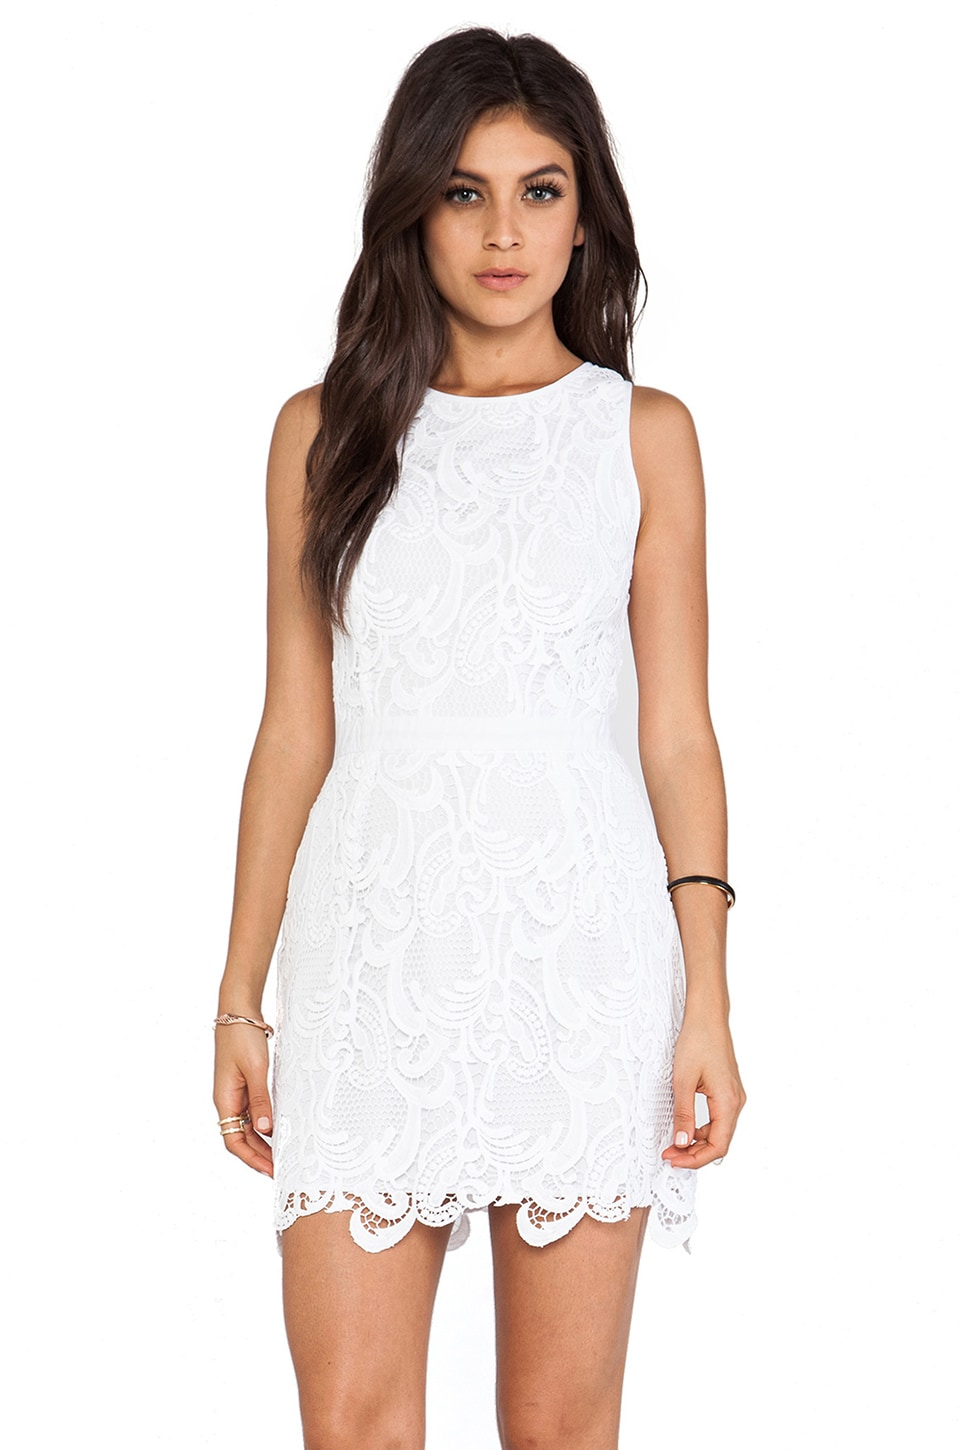 Wish REVOLVE Exclusive Lotus Dress in White & White